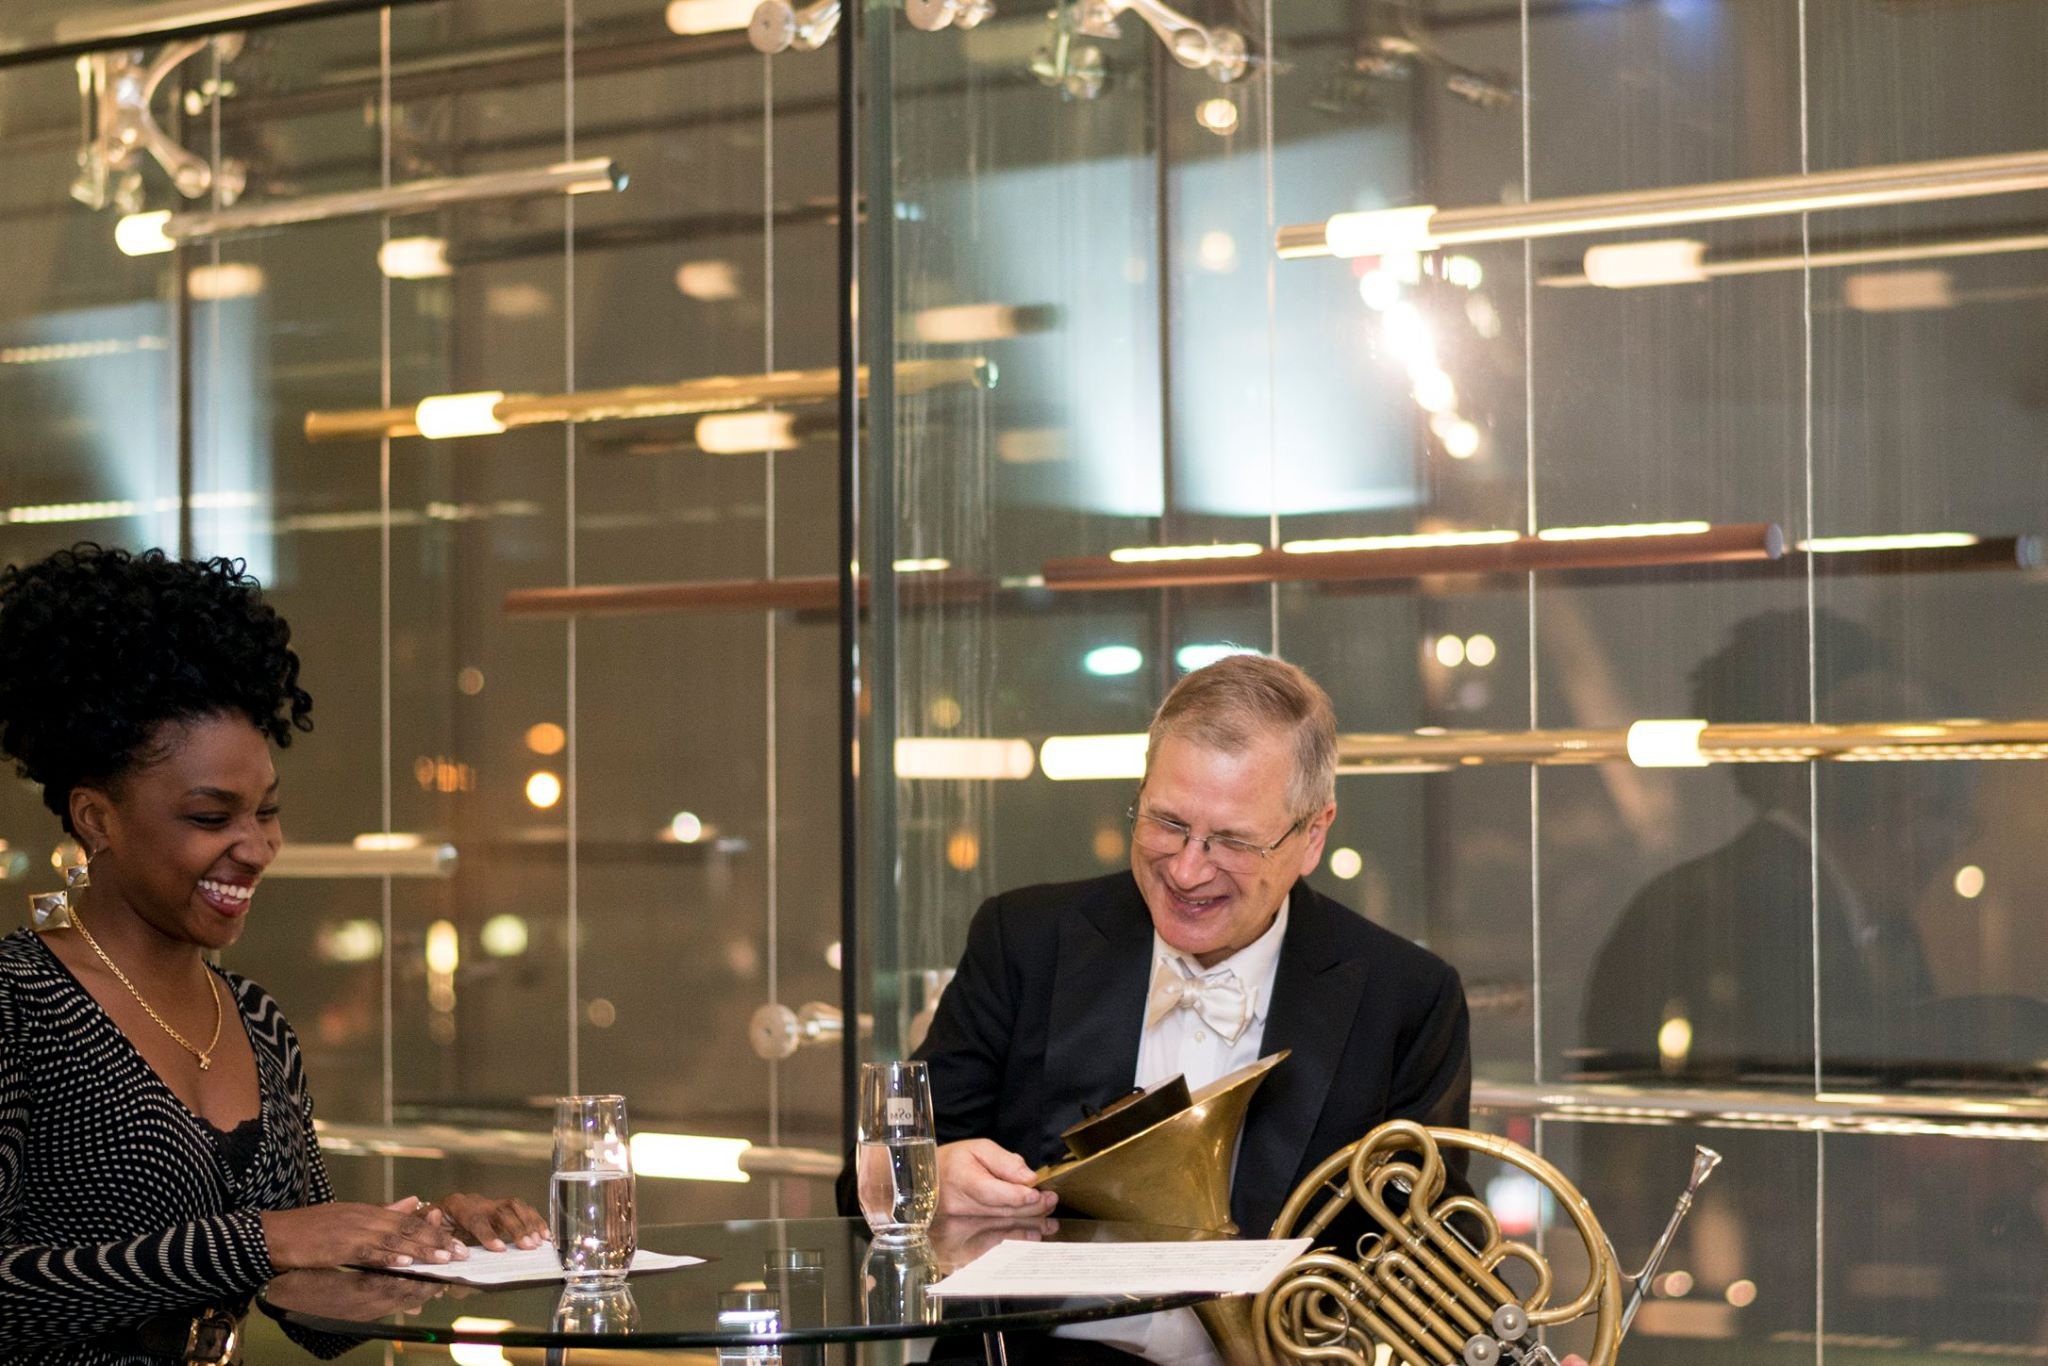 Interview with OSM French Horn Player - John Zirbel